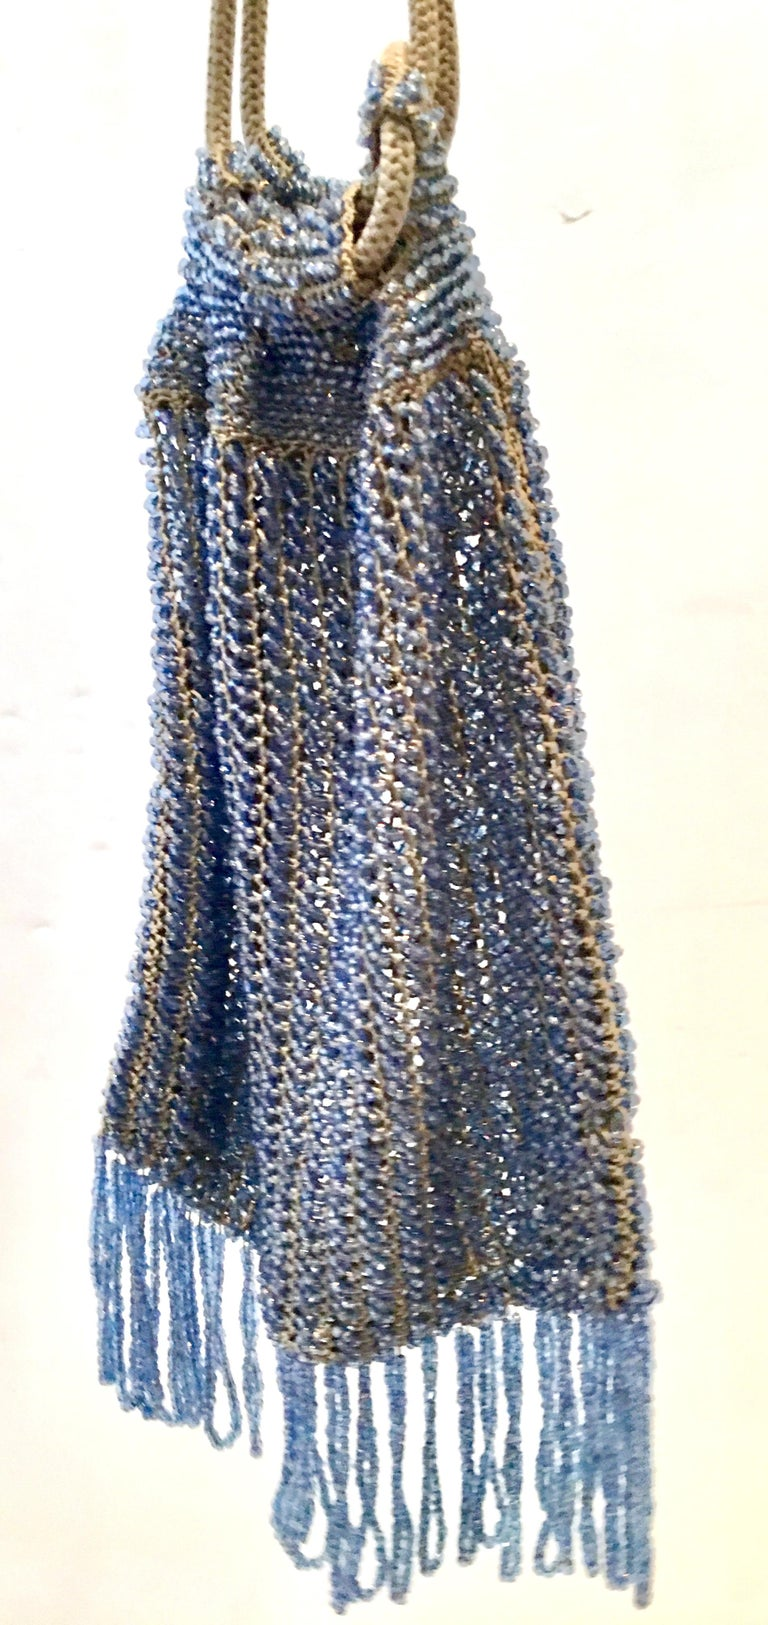 Antique Hand Cut Art Glass Bead Crochet Drawsting Evening Bag In Good Condition For Sale In West Palm Beach, FL